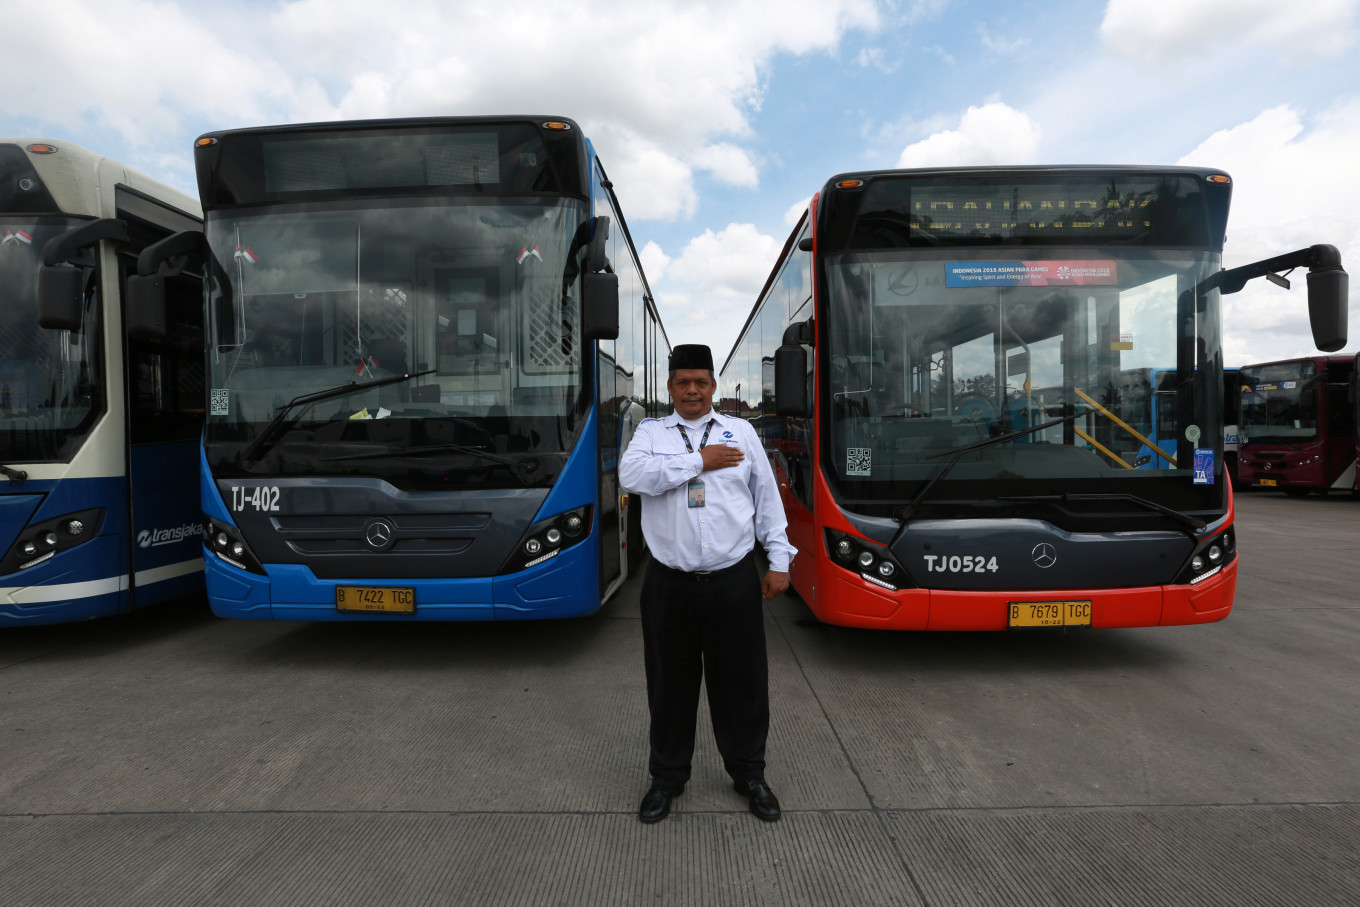 Achievement unlocked: Transjakarta breaks record for serving one million customers in a day